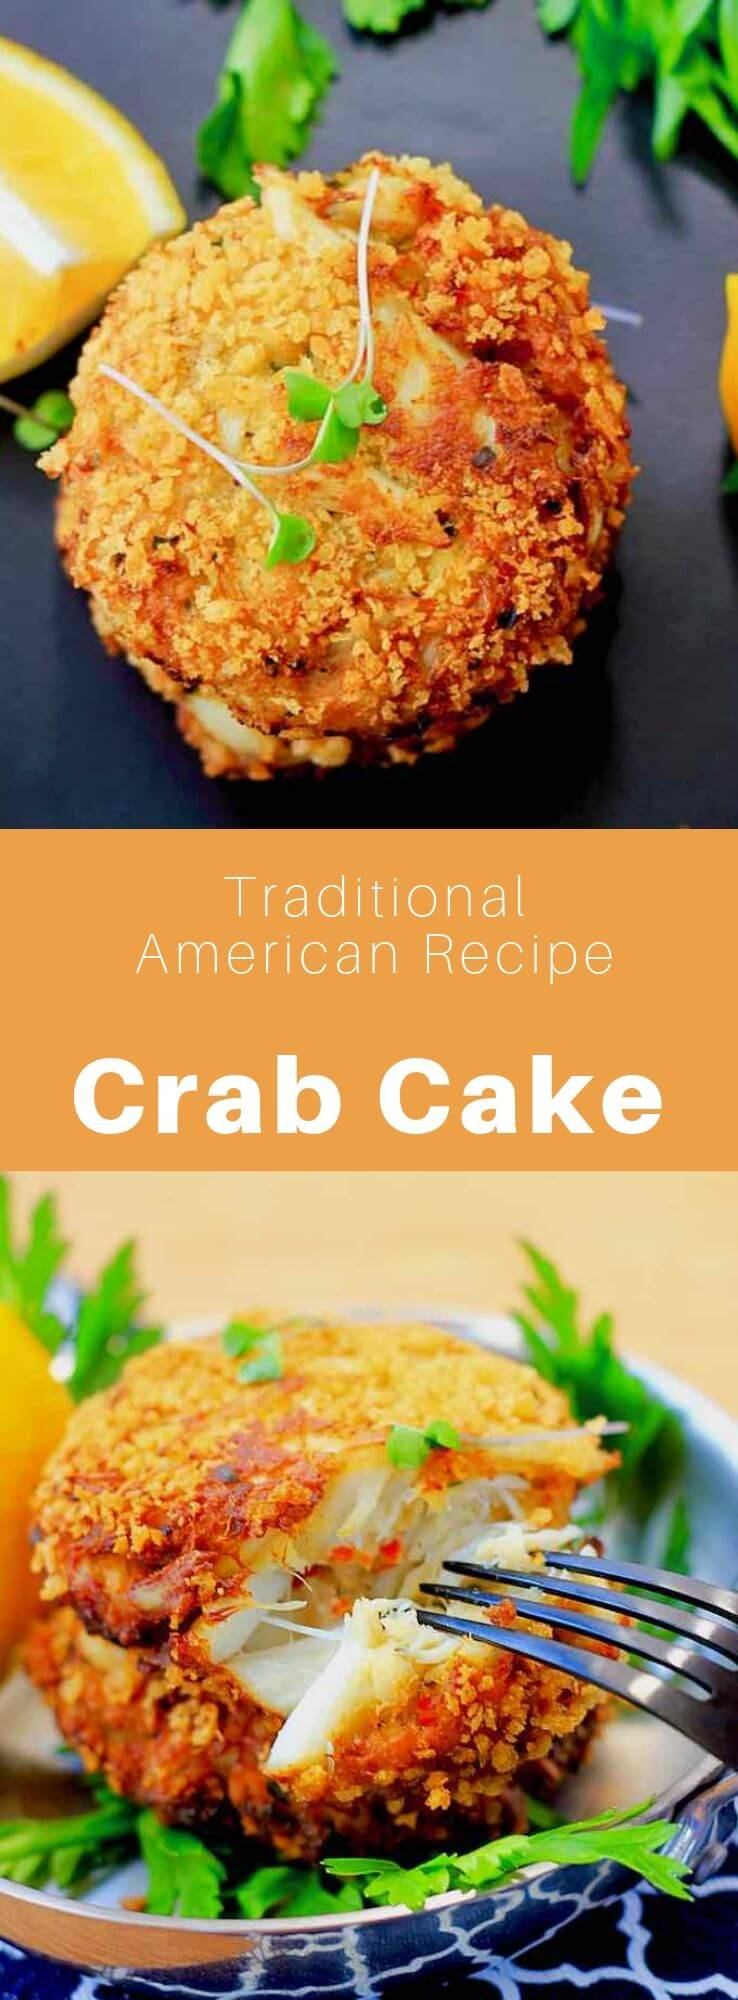 A crab cake is a popular American recipe that is prepared with crabmeat and other ingredients such as breadcrumbs, mayonnaise, mustard, and egg. It is then fried, sautéed, baked, or grilled. #AmericanRecipe #AmericanFood #AmericanCuisine #WorldCuisine #196flavors